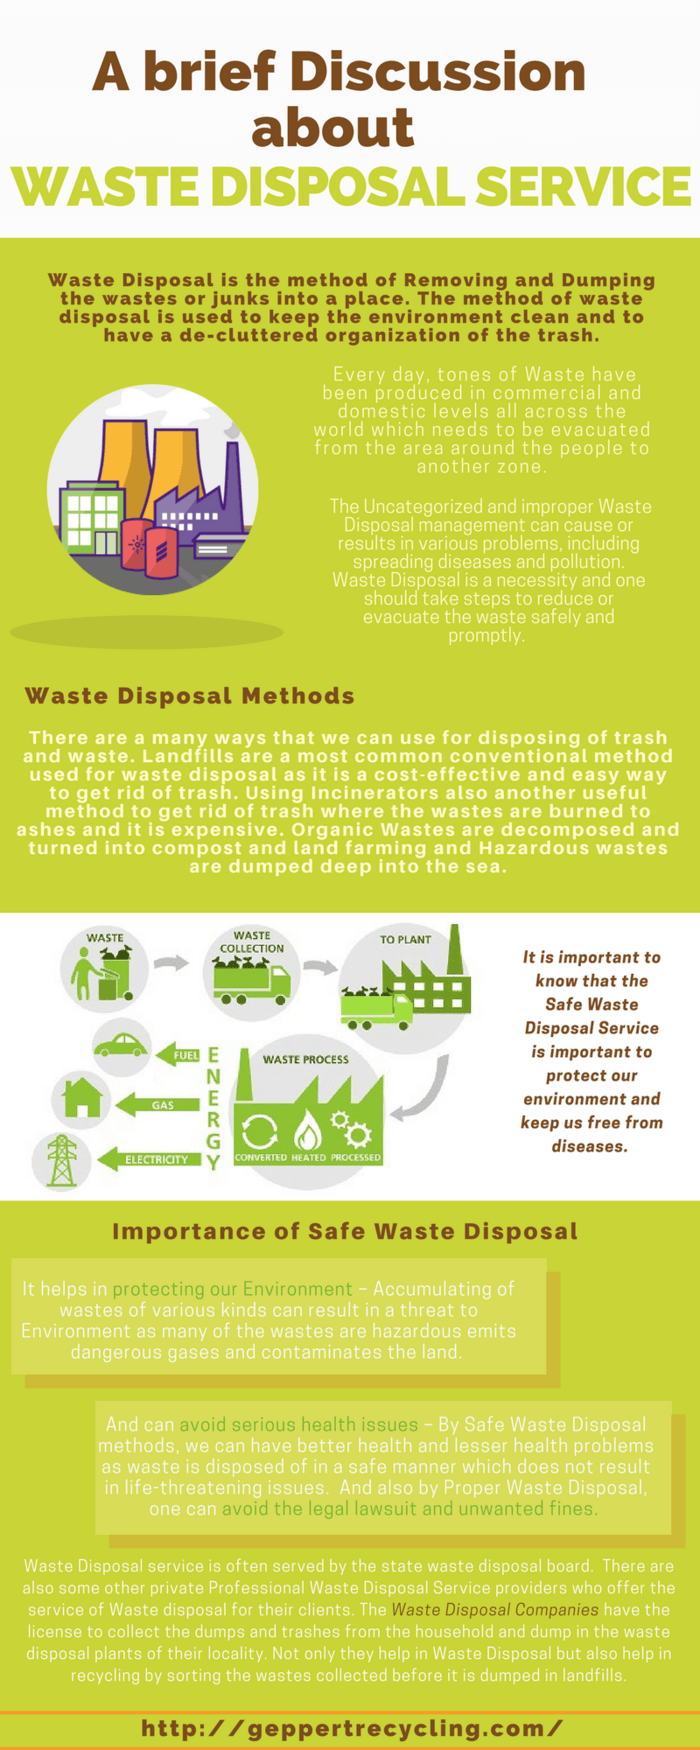 A Brief Discussion about Waste Disposal Service